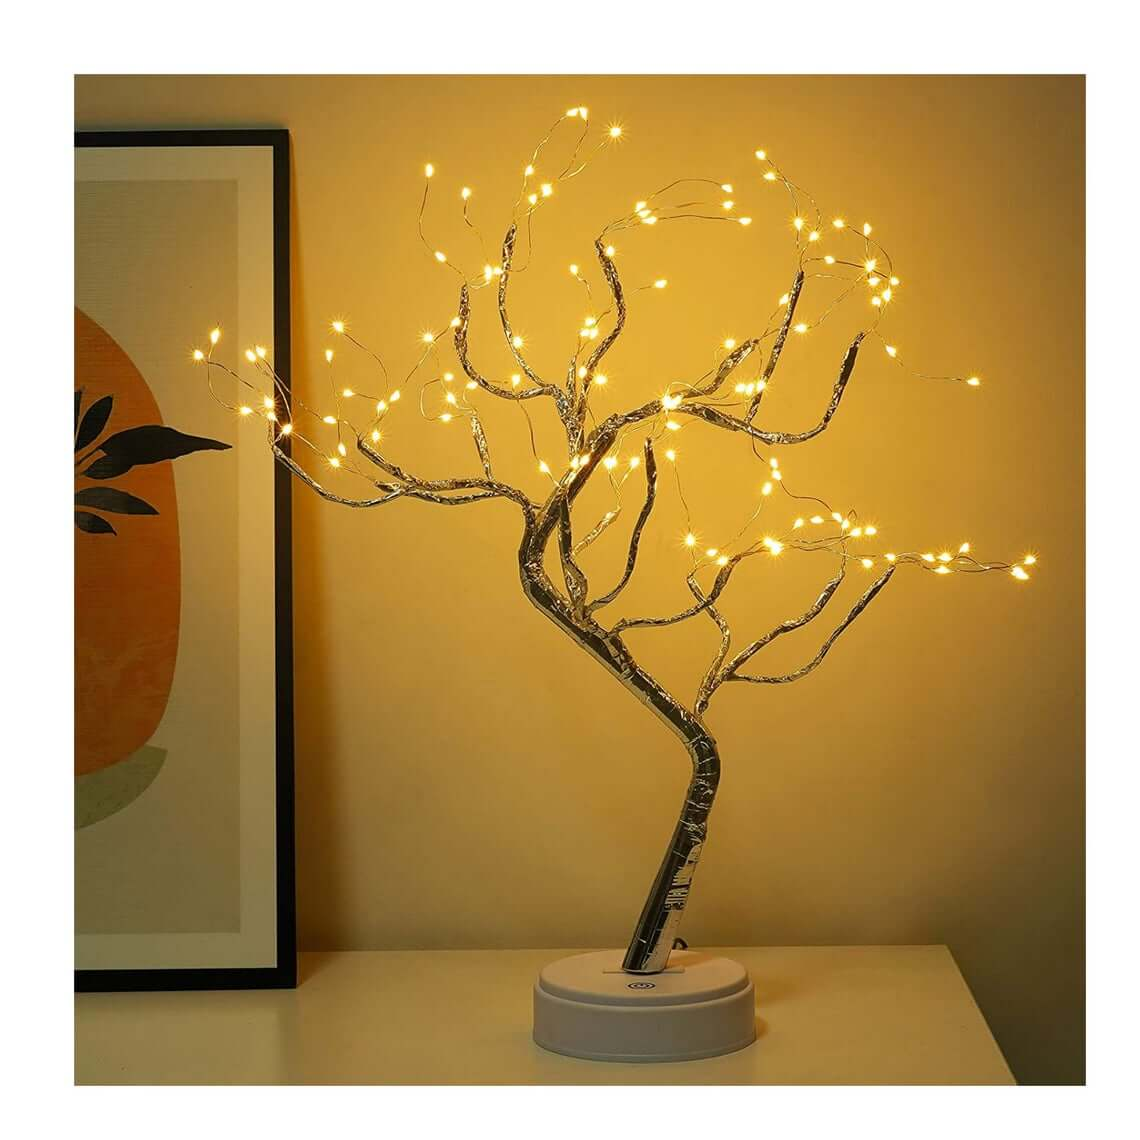 Battery-Powered Bonsai Tree Lamp for Your Fair Bedroom